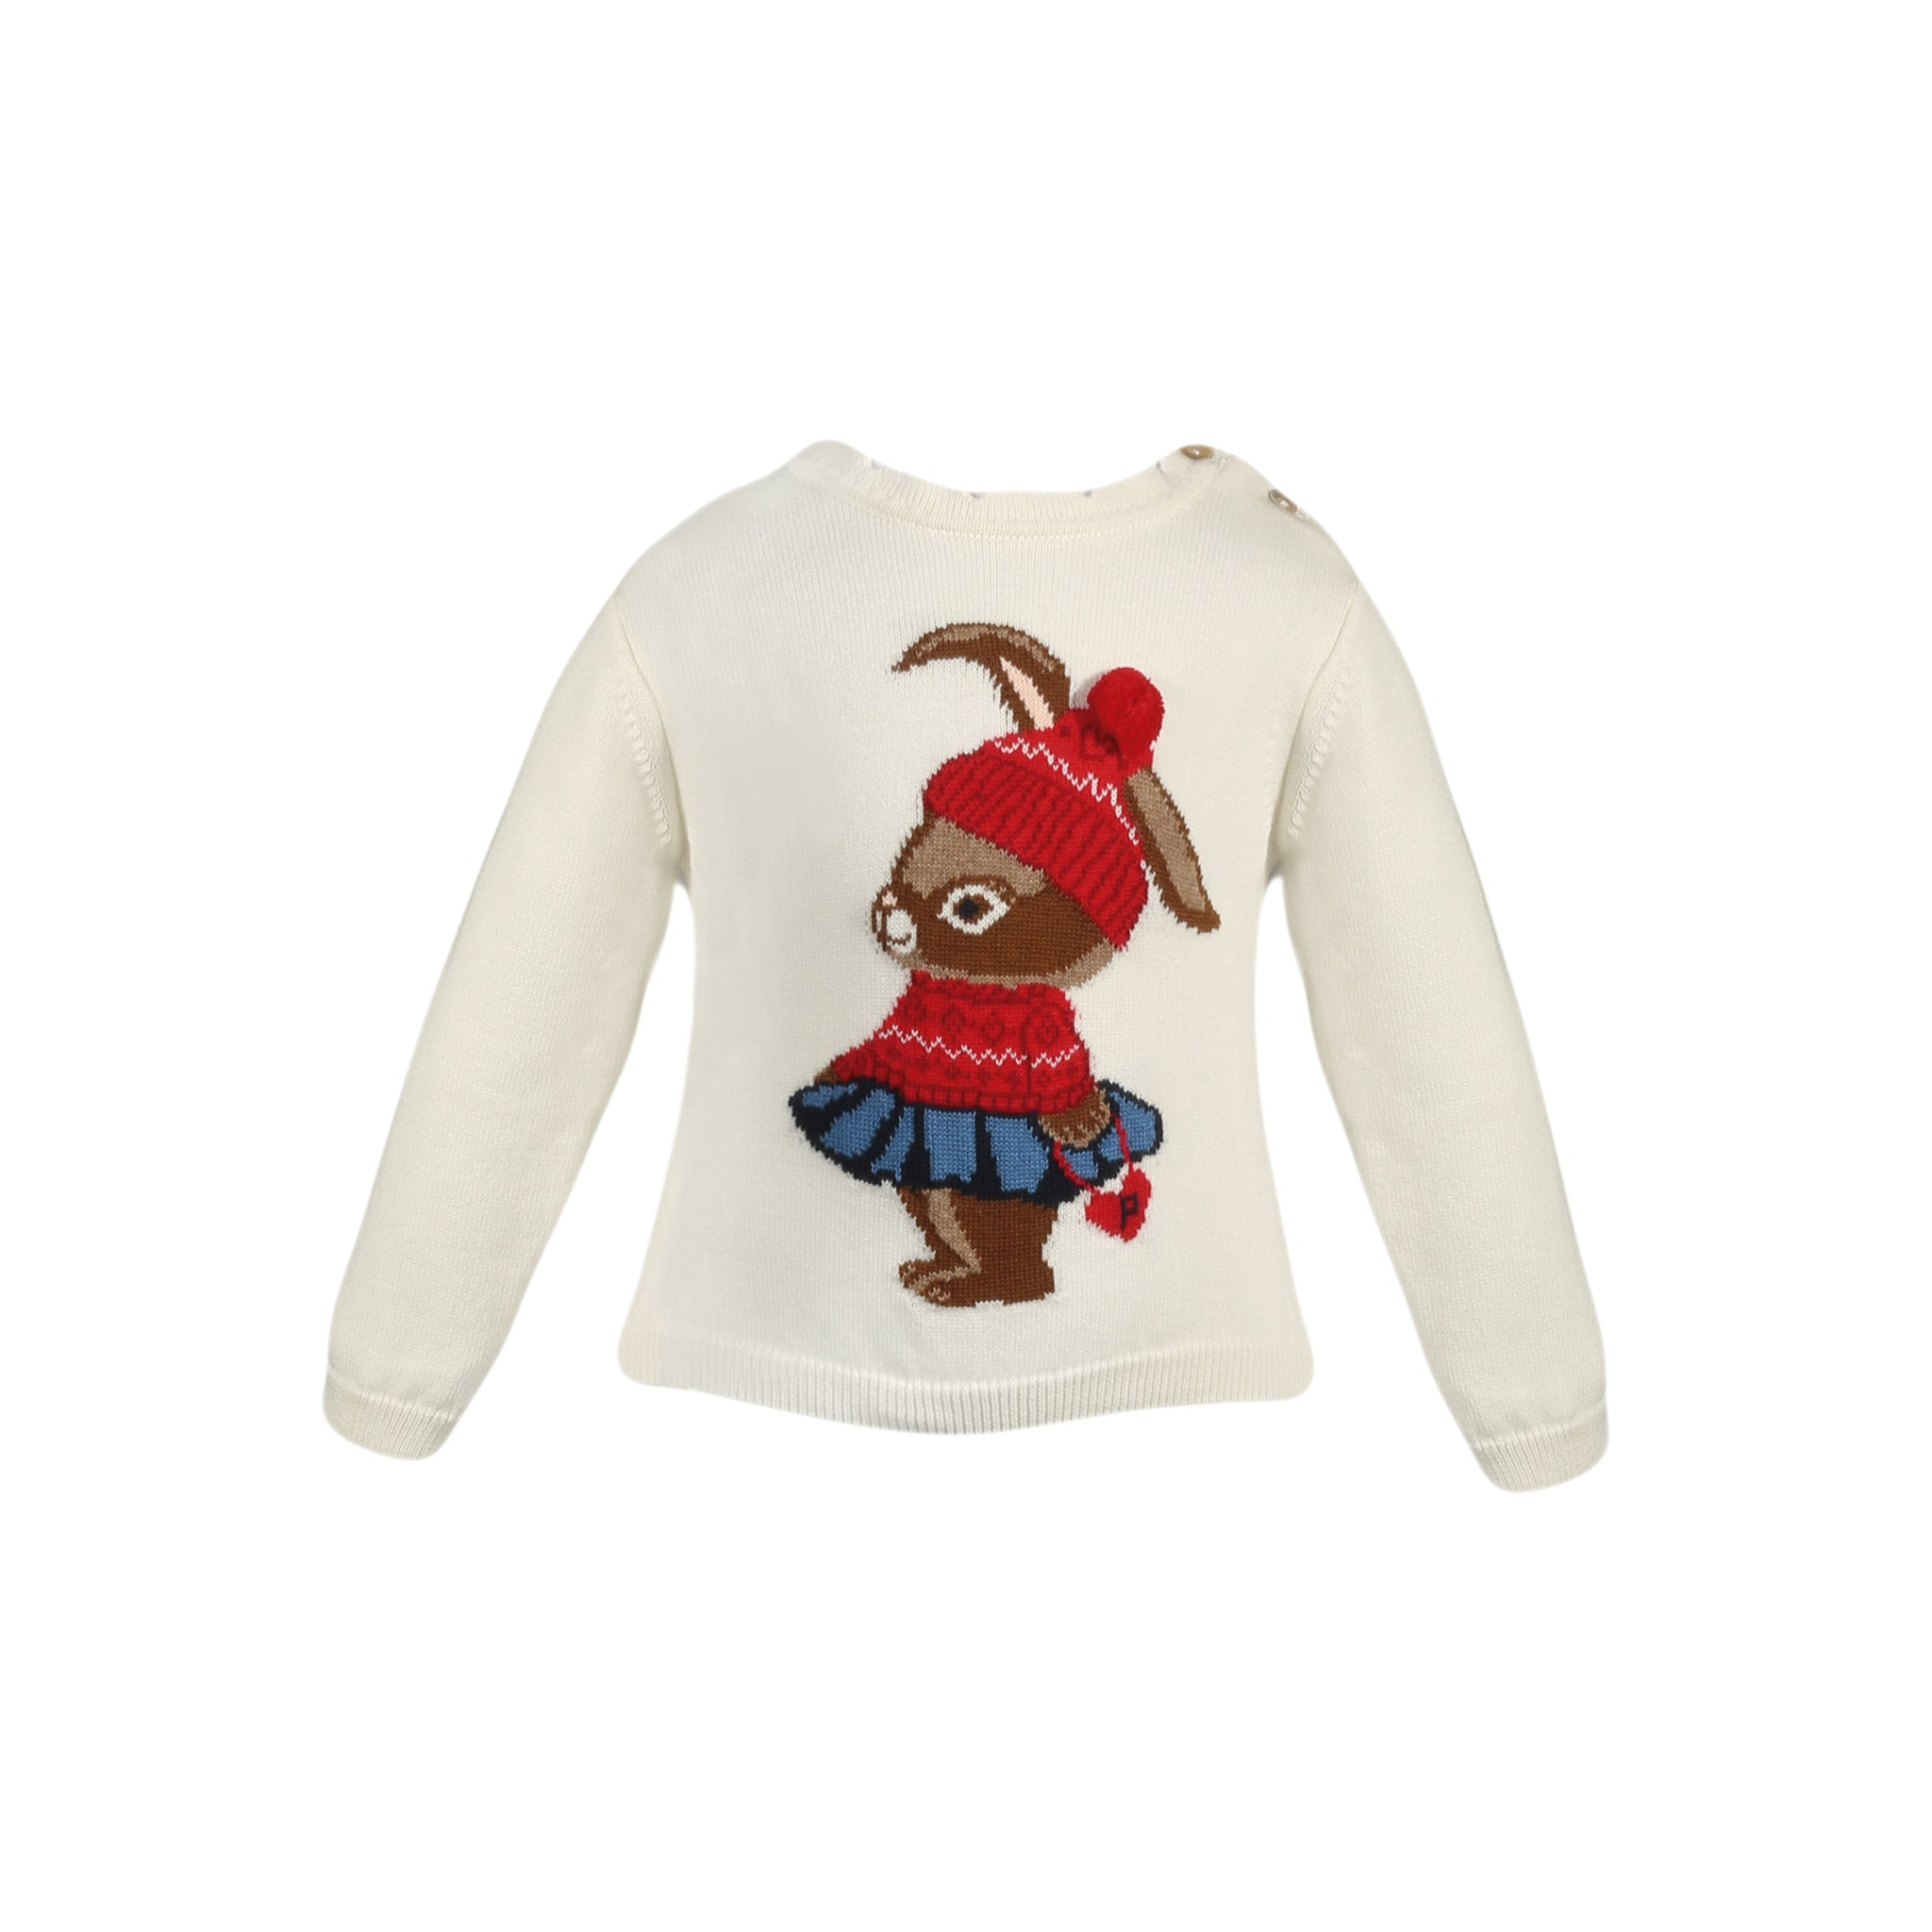 patachou girls bunny holiday sweater